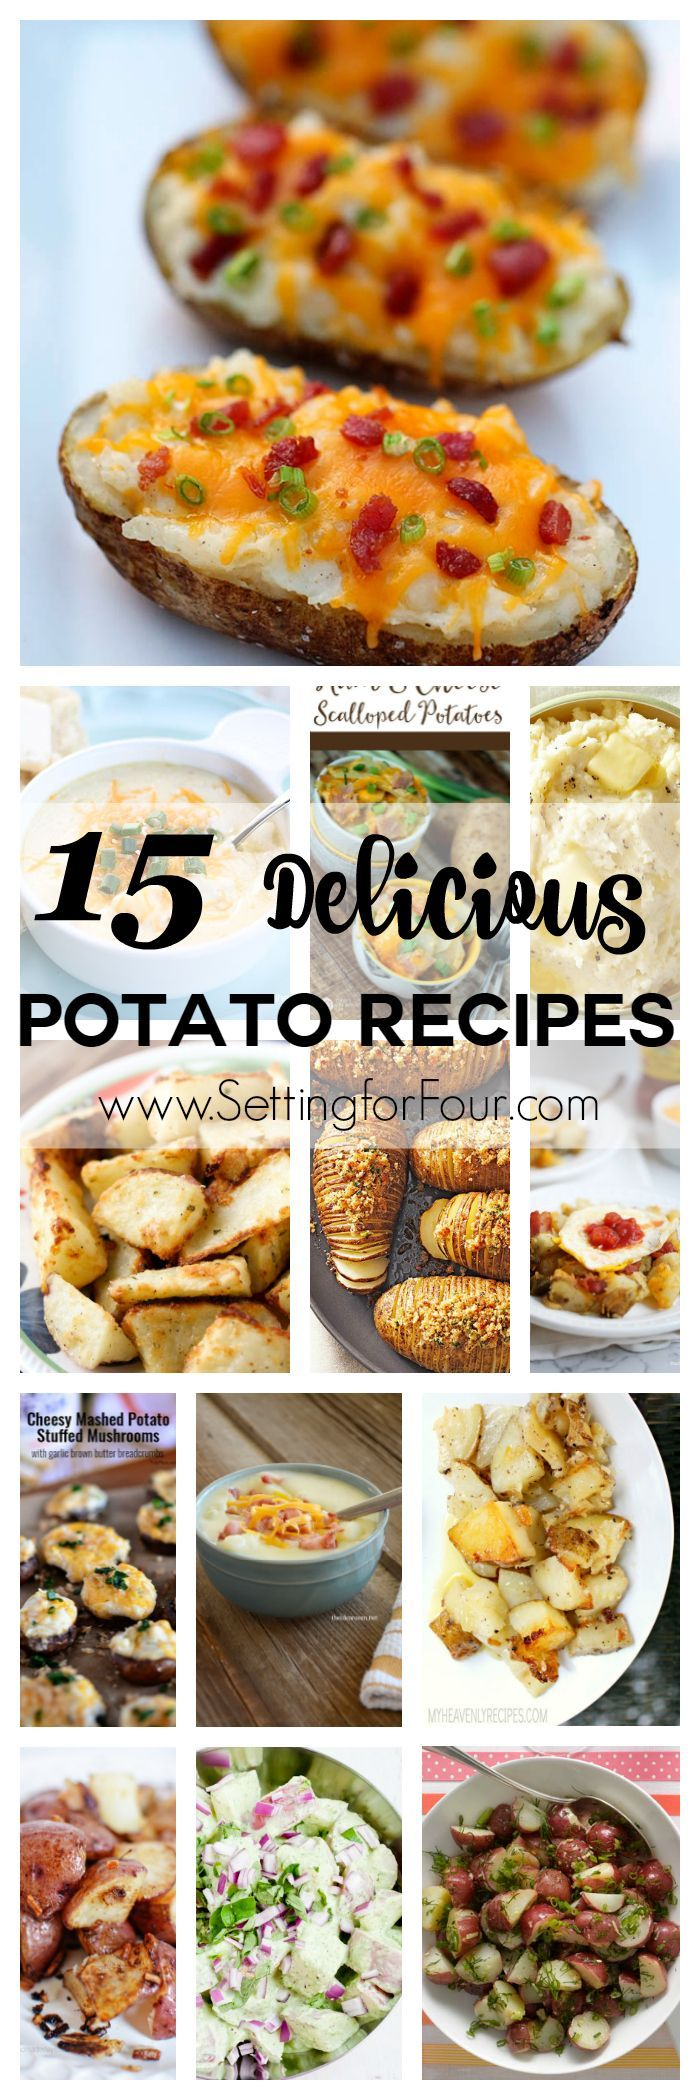 15 Delicious Potato Recipes you have to try! Includes recipes for potato casseroles, soups, baked, fried, mashed and more!